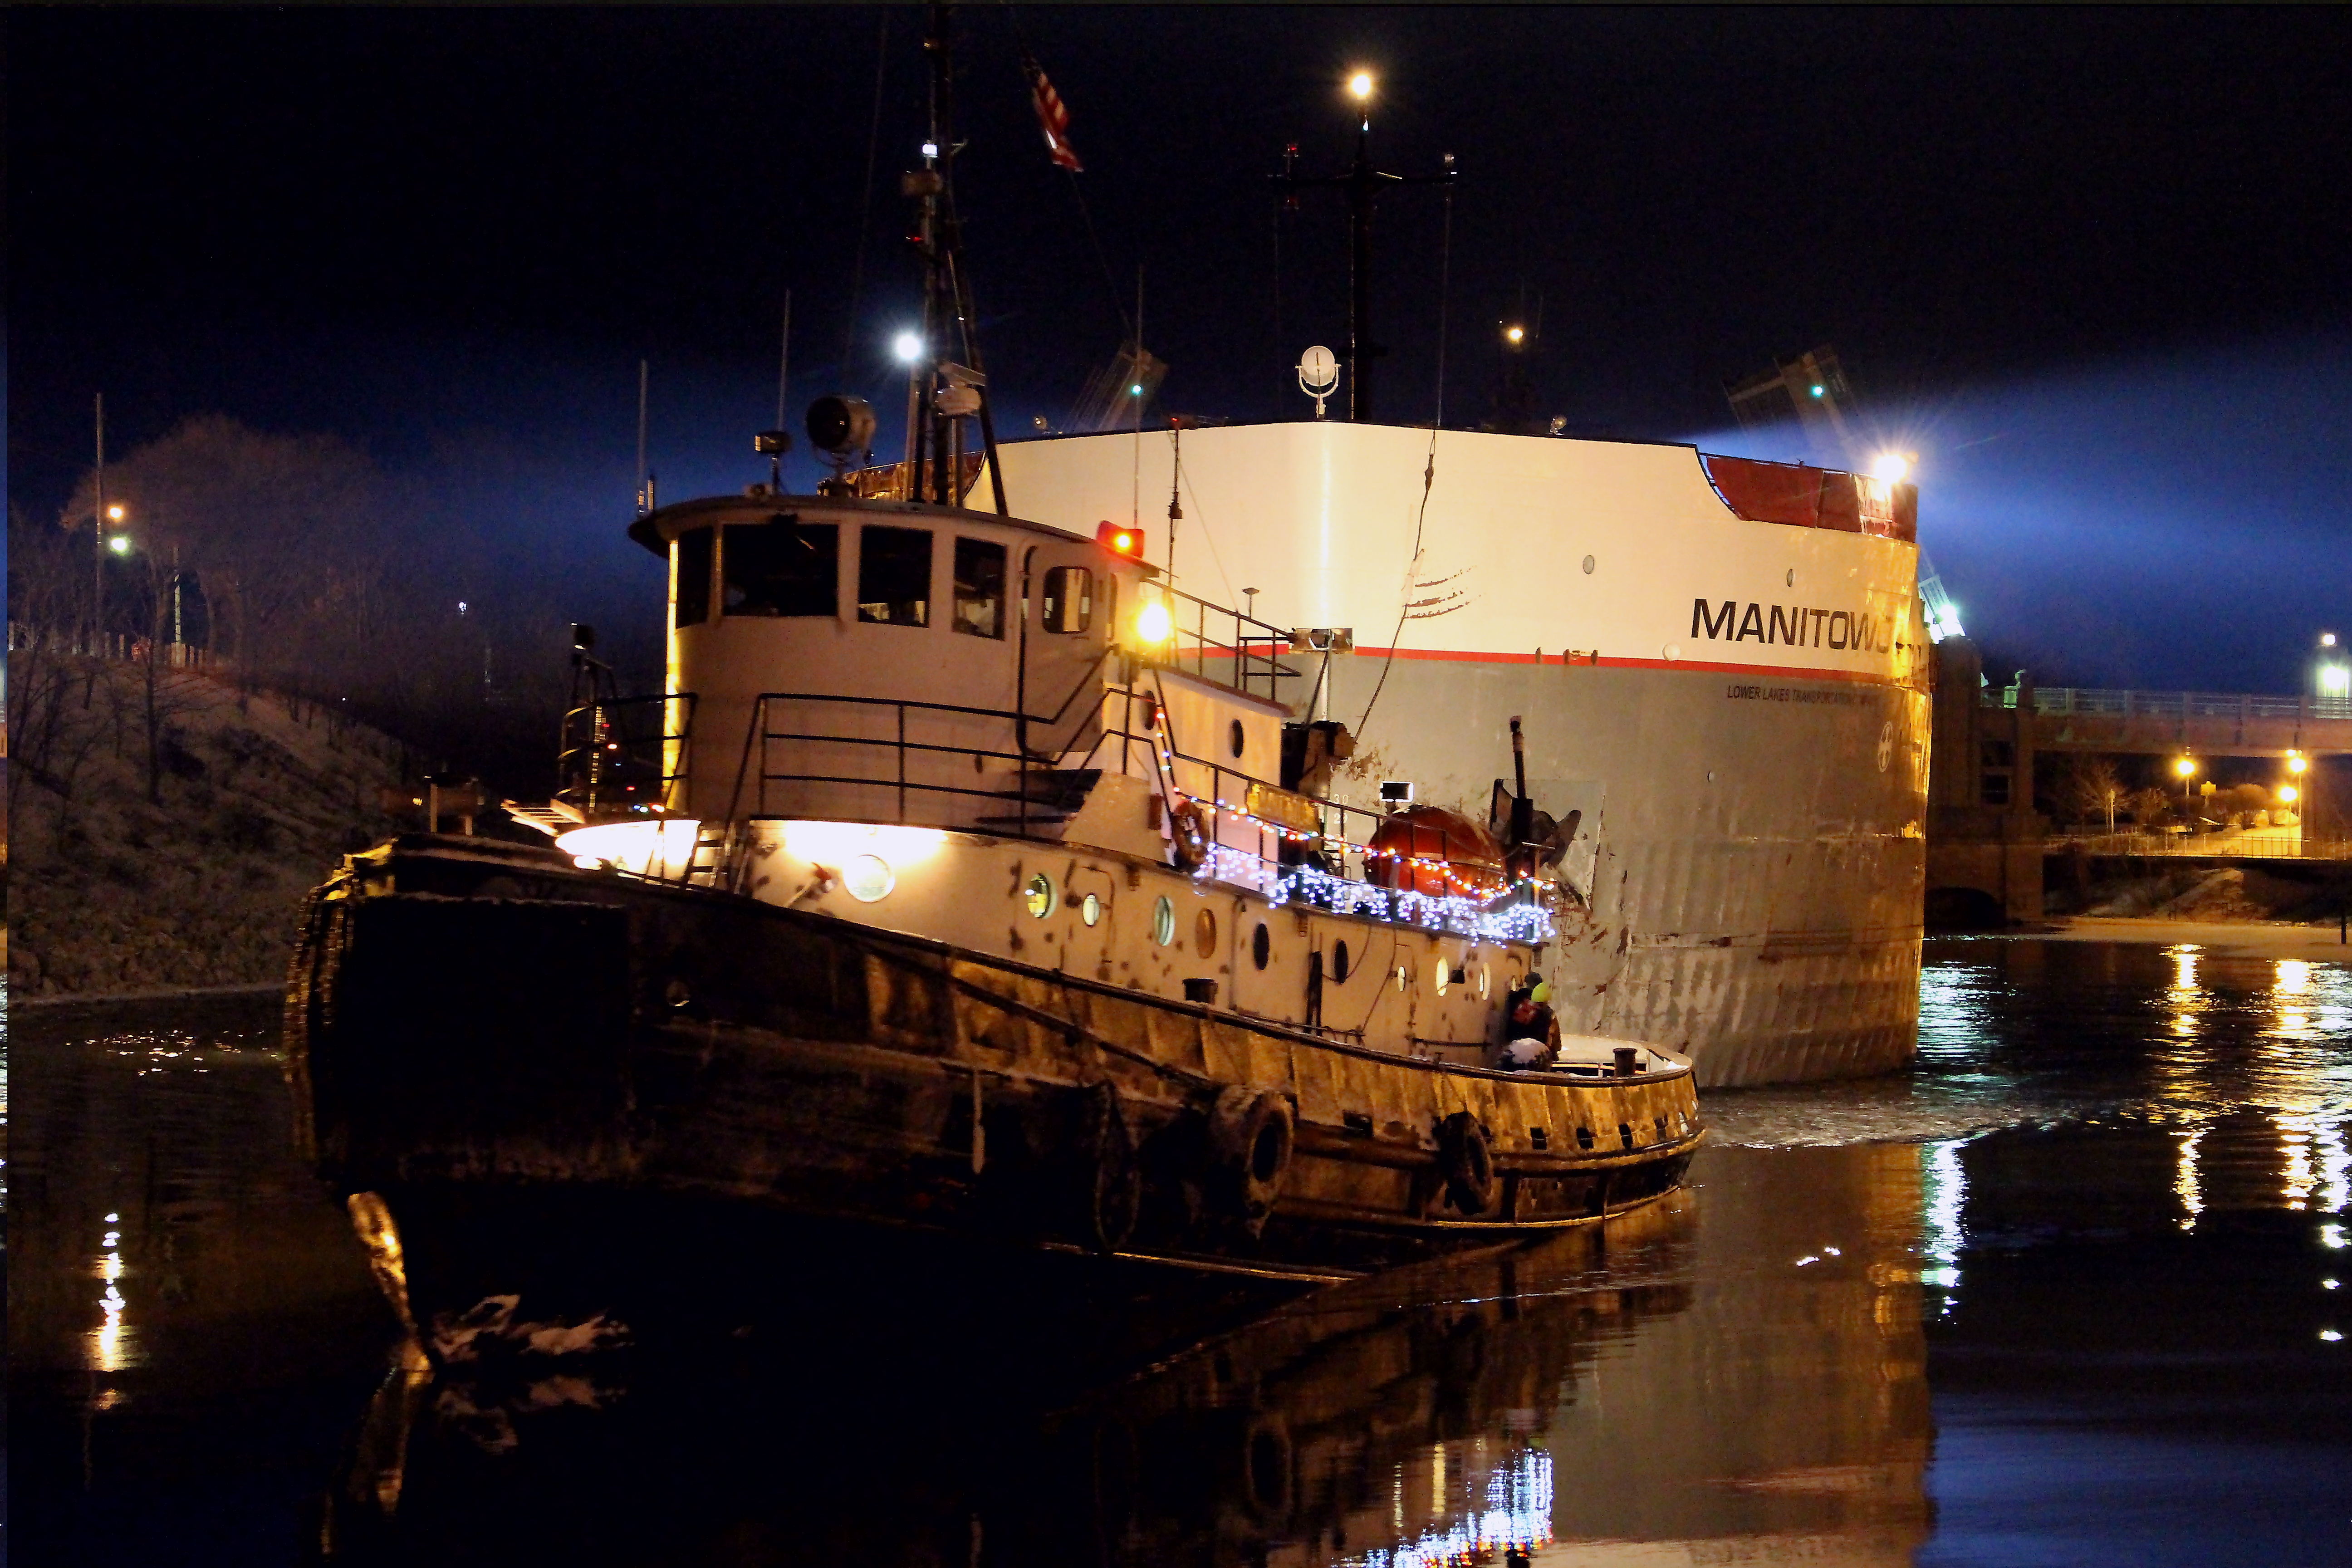 Freighter Manitowoc and Tug Boat seen at night in the Manistee River Channel